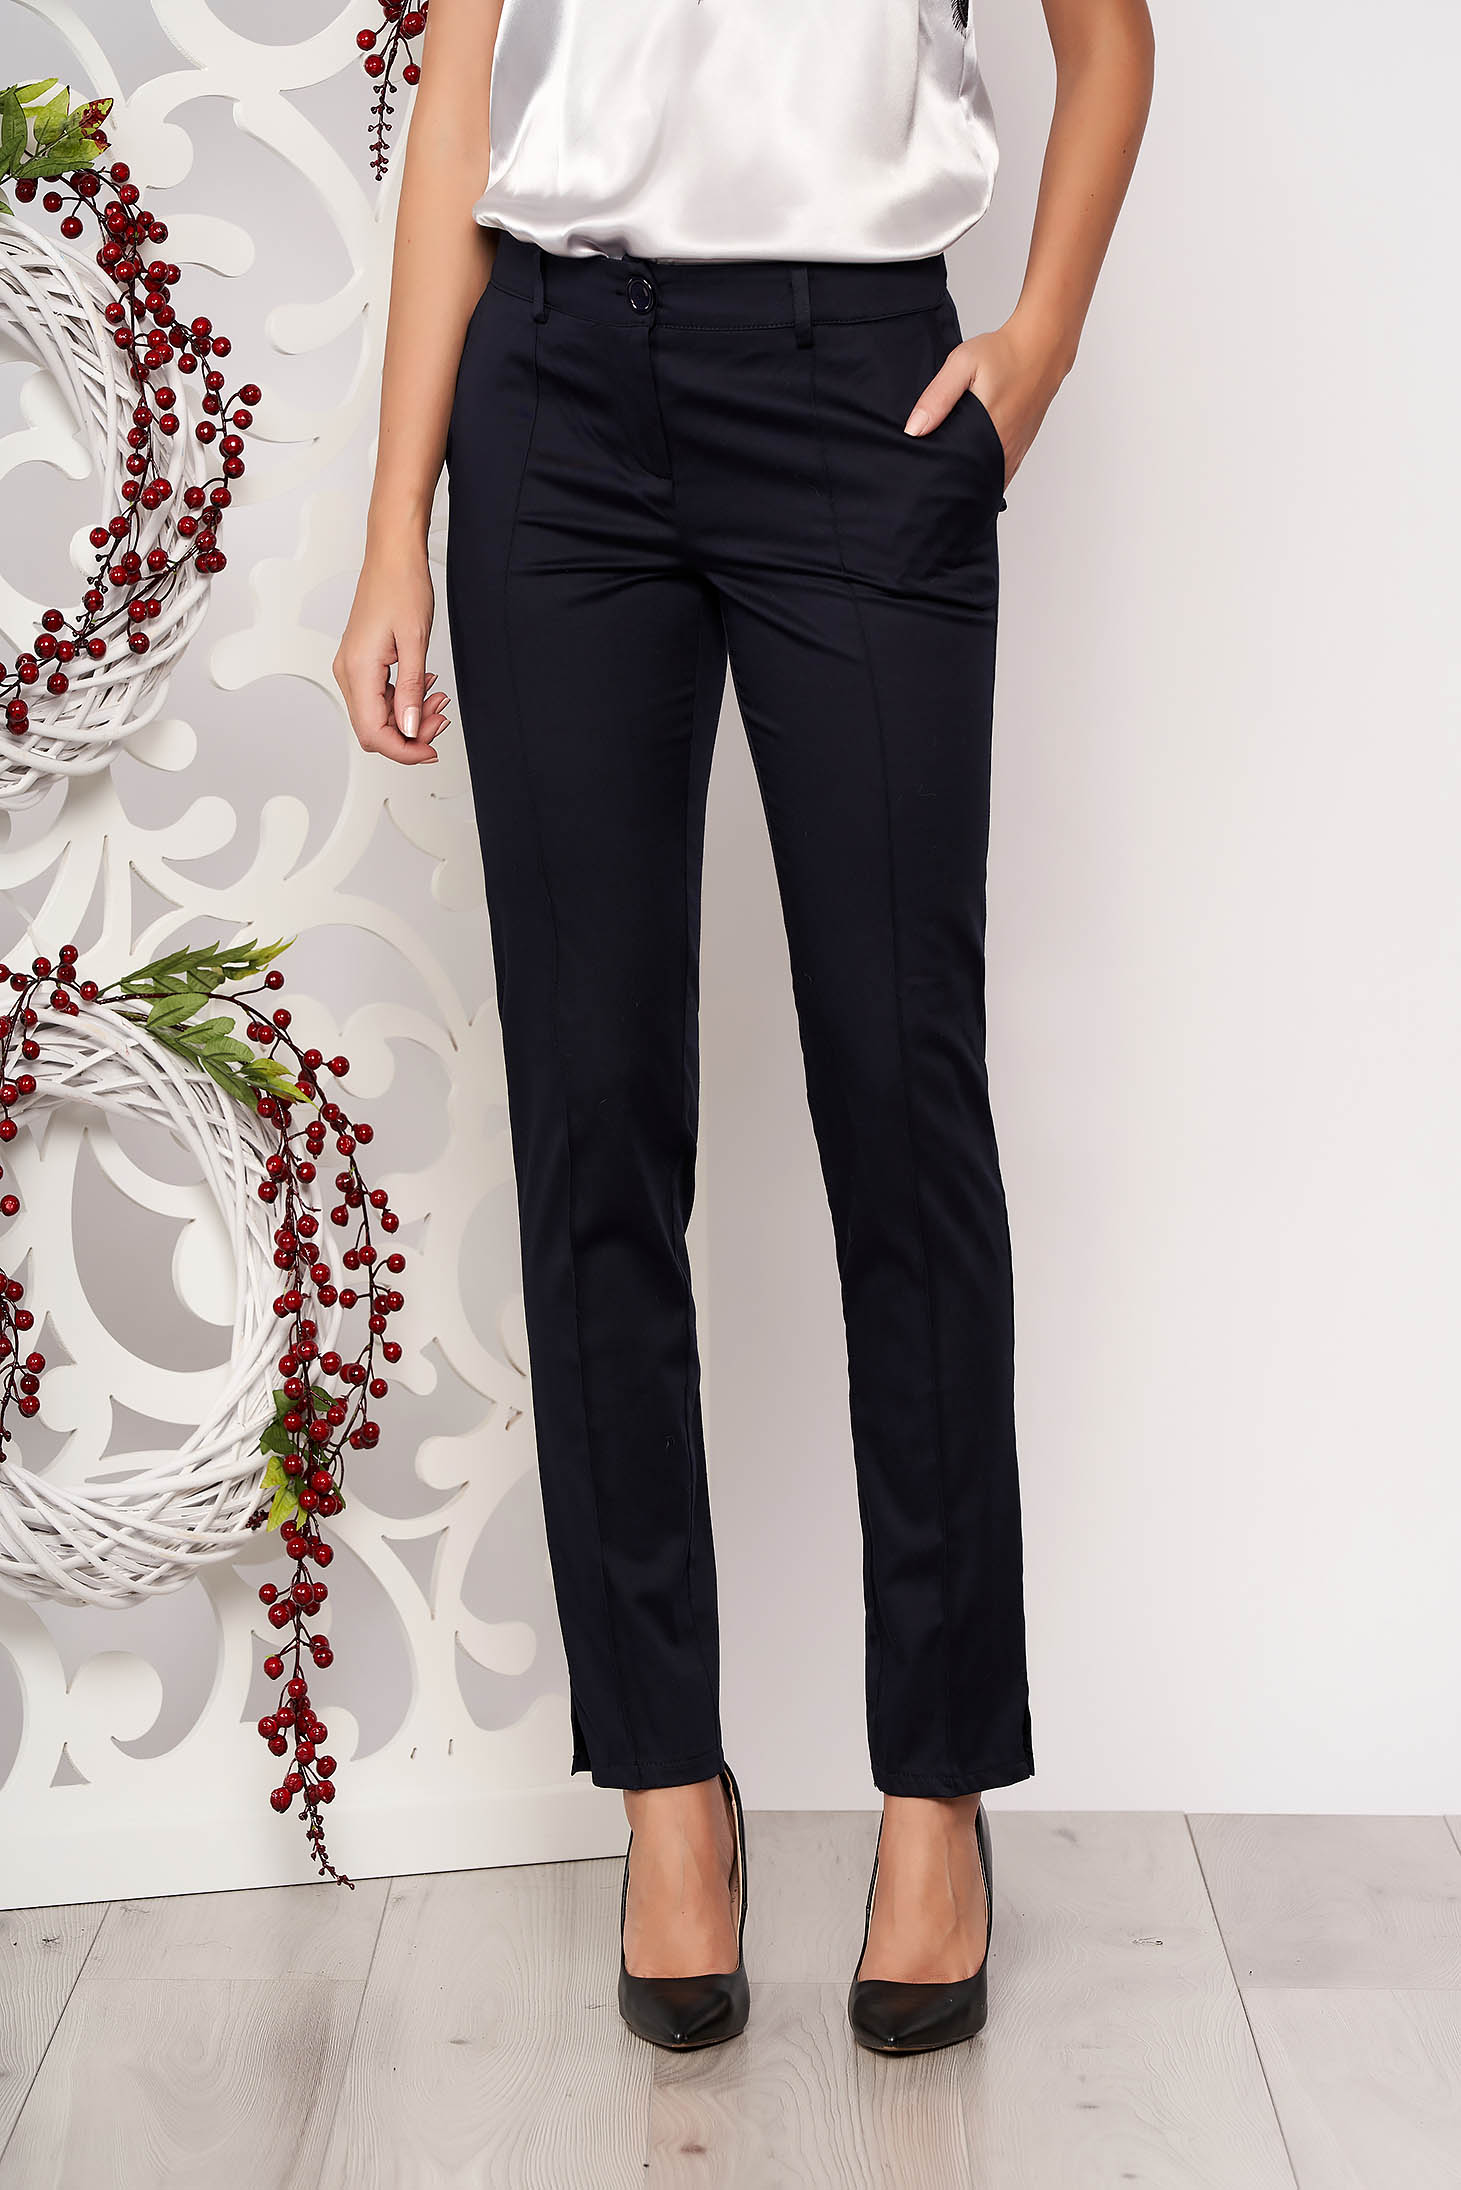 Darkblue trousers office medium waist with pockets slightly elastic fabric conical